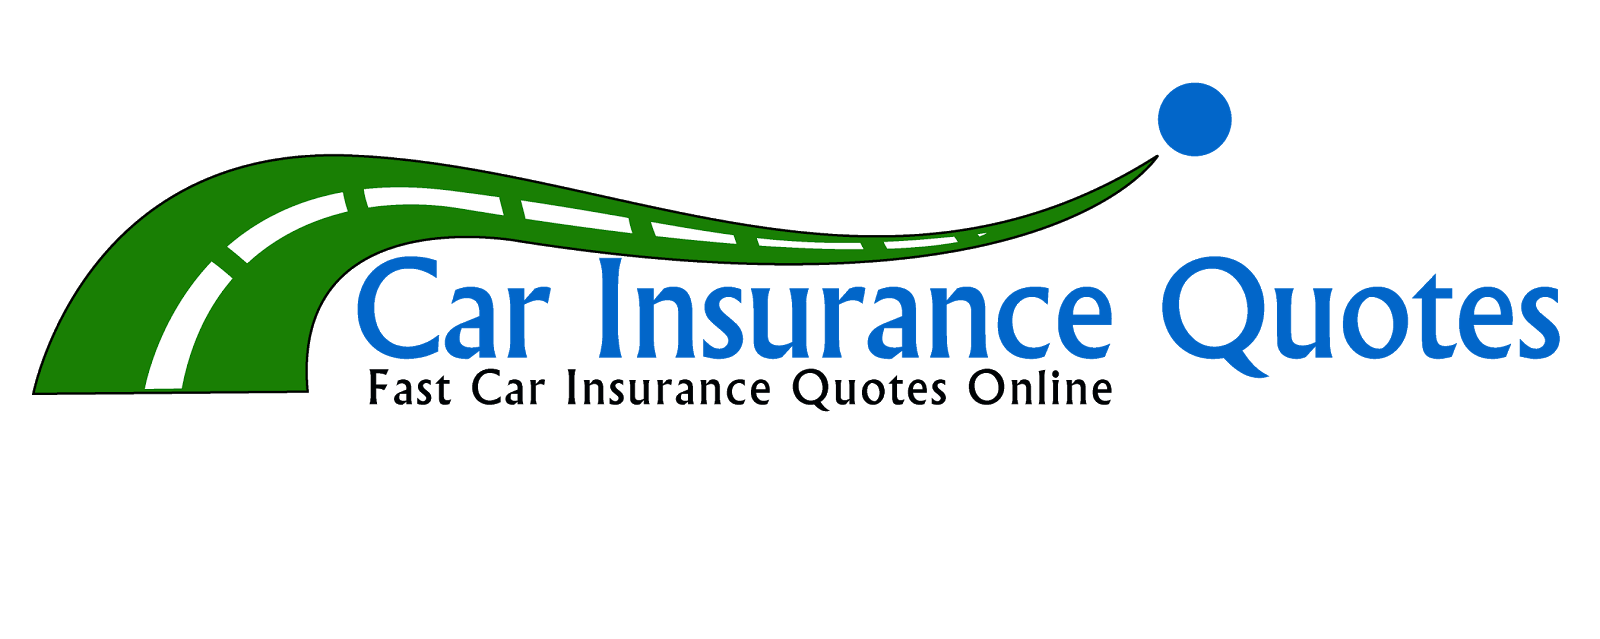 Car Insurance Quote Glamorous Free Car Insurance Quotes Online  Places To Visit  Pinterest . 2017